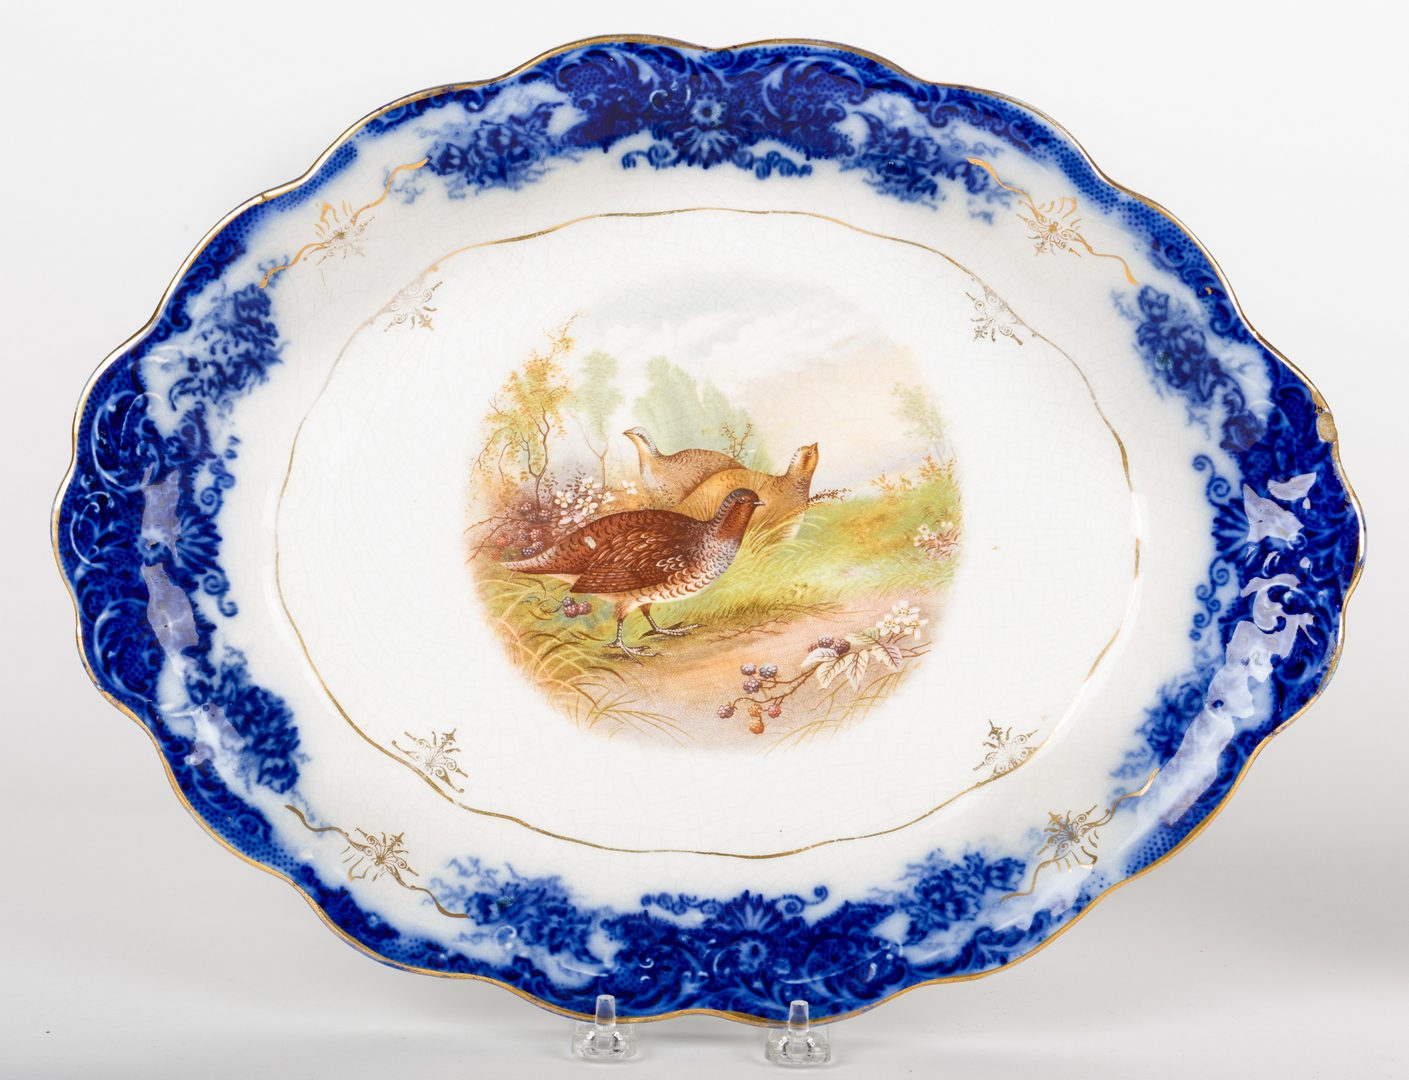 Lot 639: 4 Porcelain items including Turkey and Pheasant Platters, 2 Pitchers